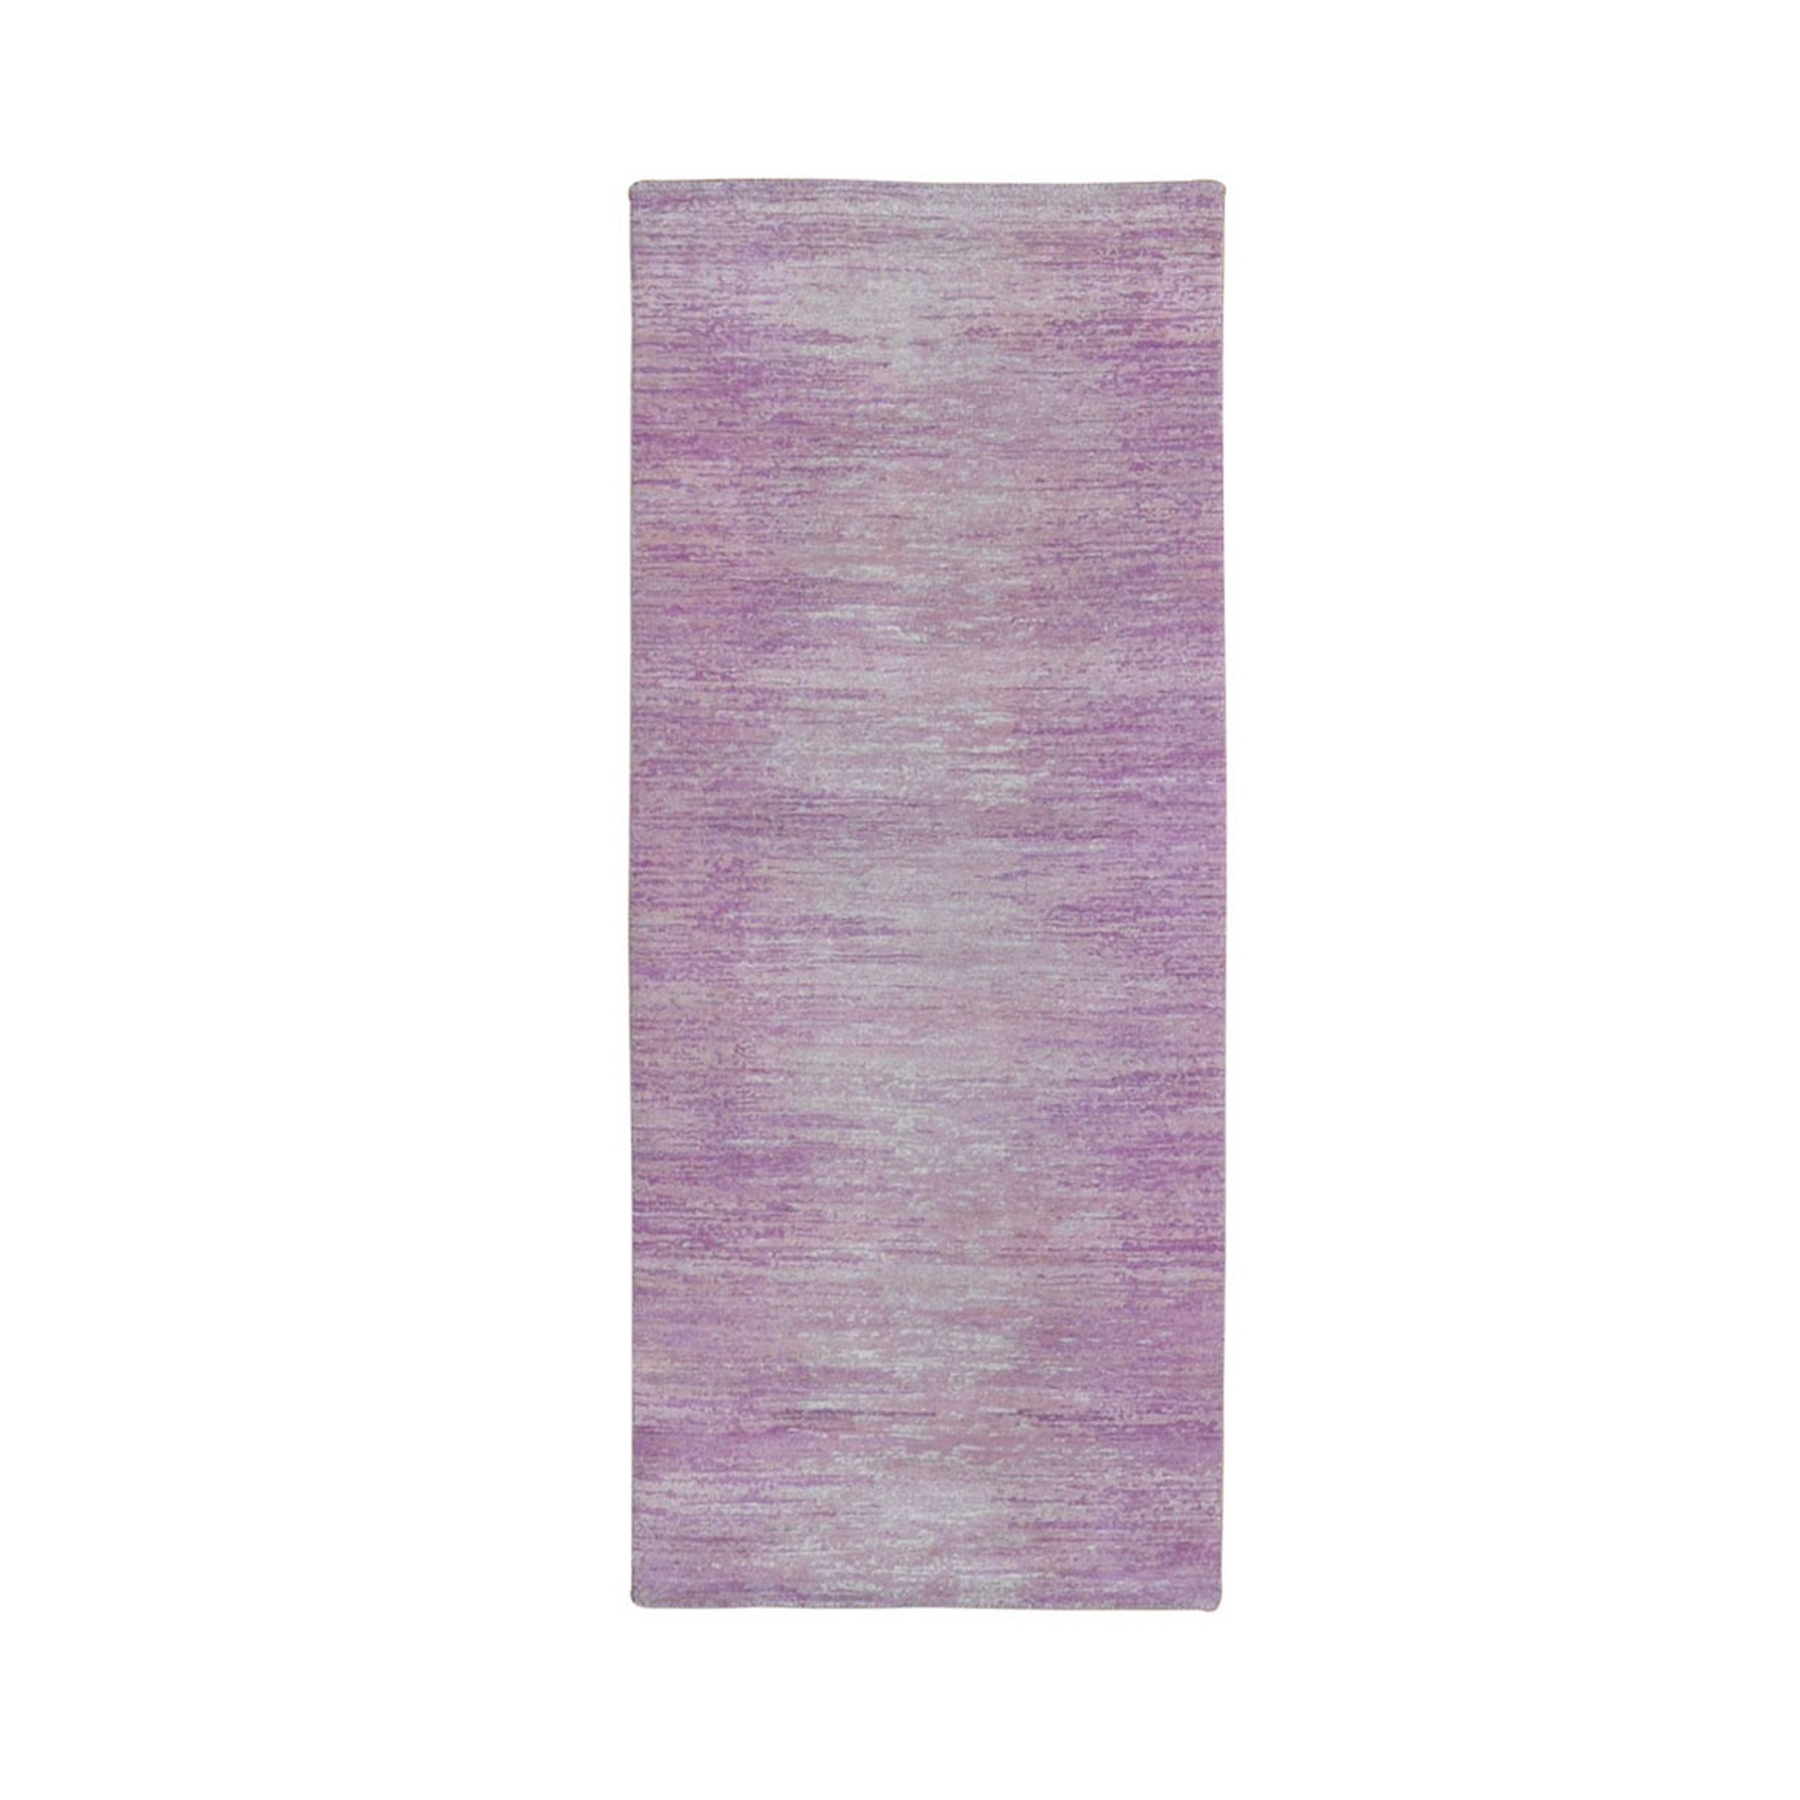 Mid Century Modern Collection Hand Knotted Pink Rug No: 1133522